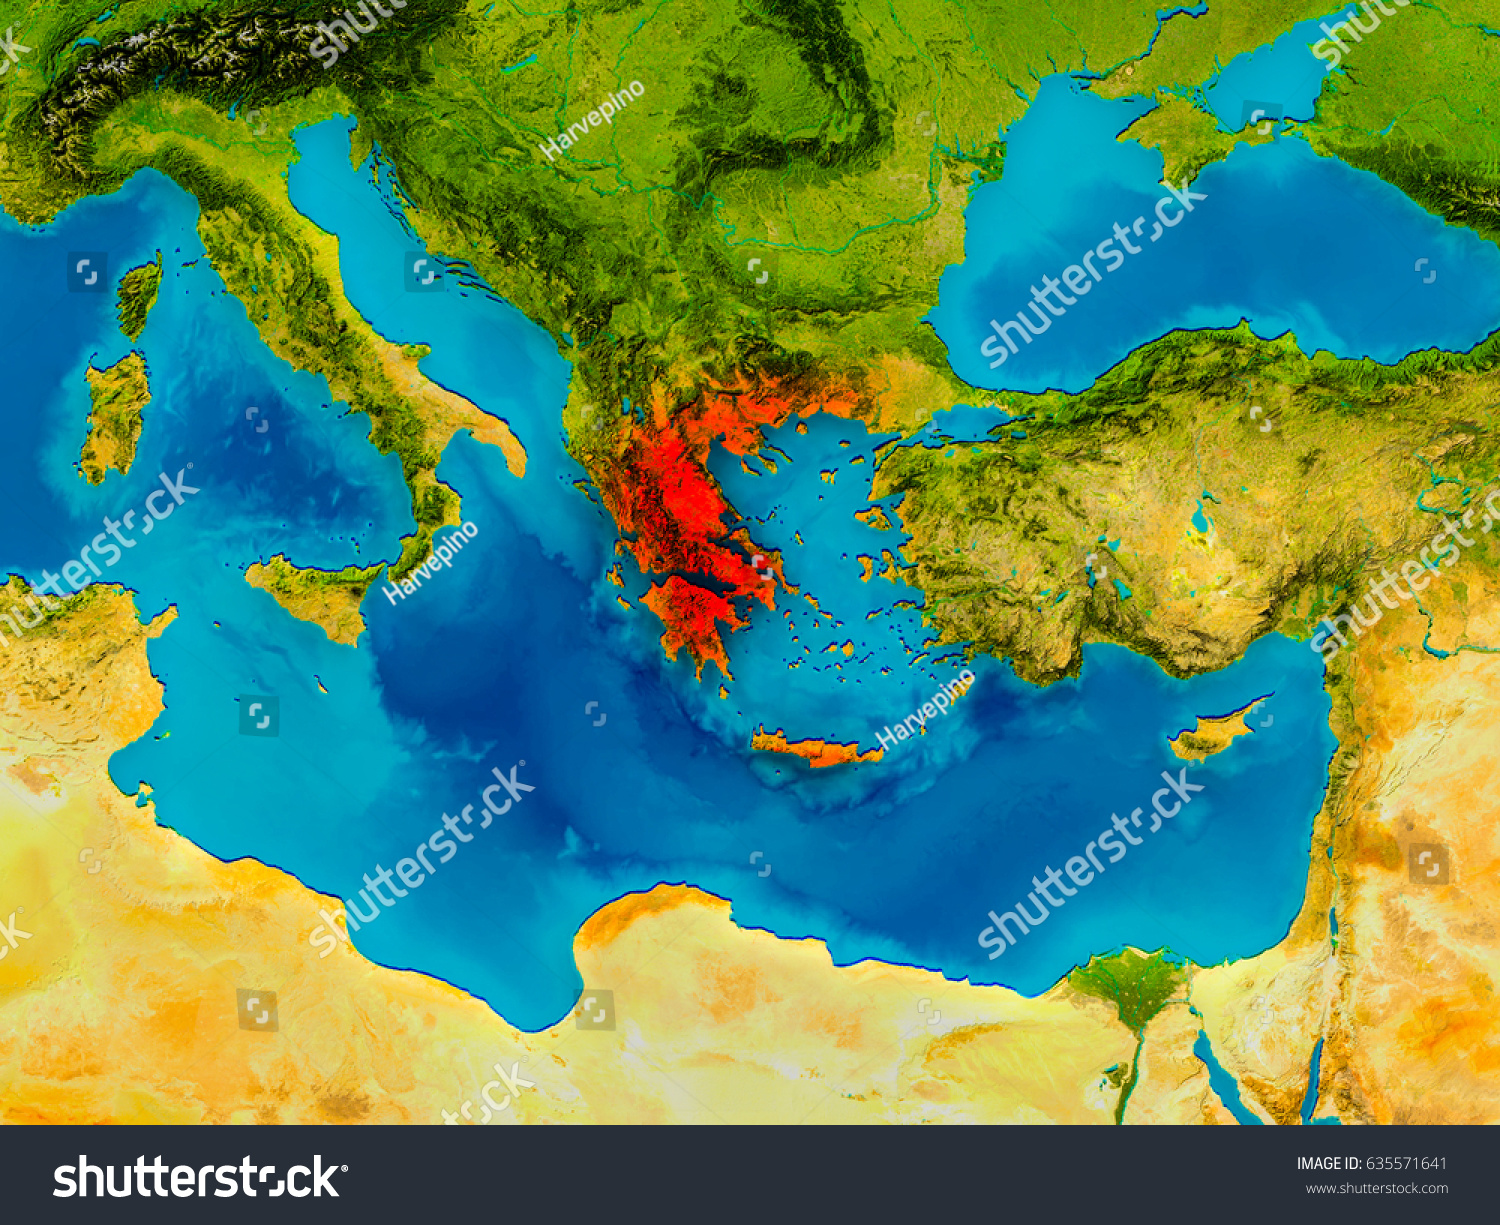 Greece highlighted red on physical map stock illustration 635571641 greece highlighted in red on physical map 3d illustration elements of this image furnished gumiabroncs Choice Image